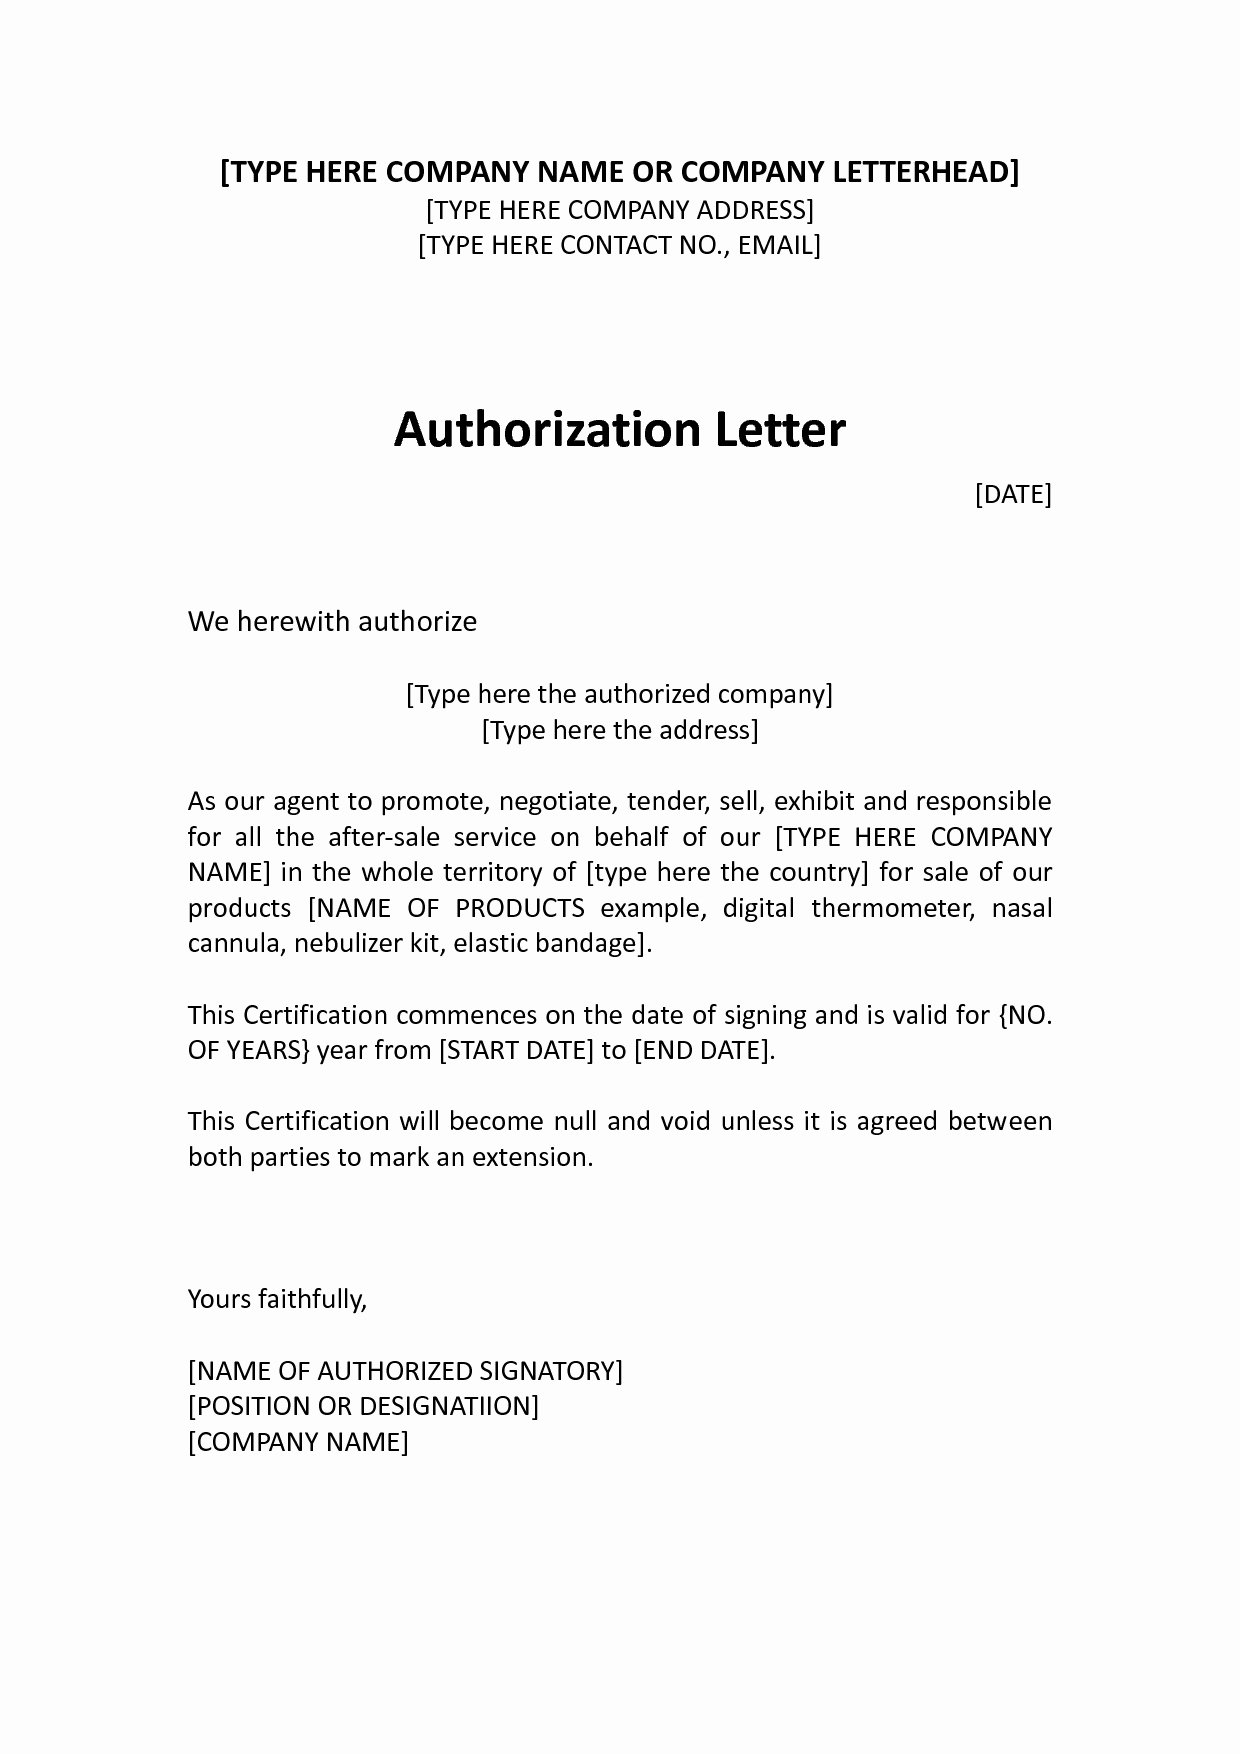 Rent Free Letter Template Fresh Rent Free Letter From Parents Template Examples